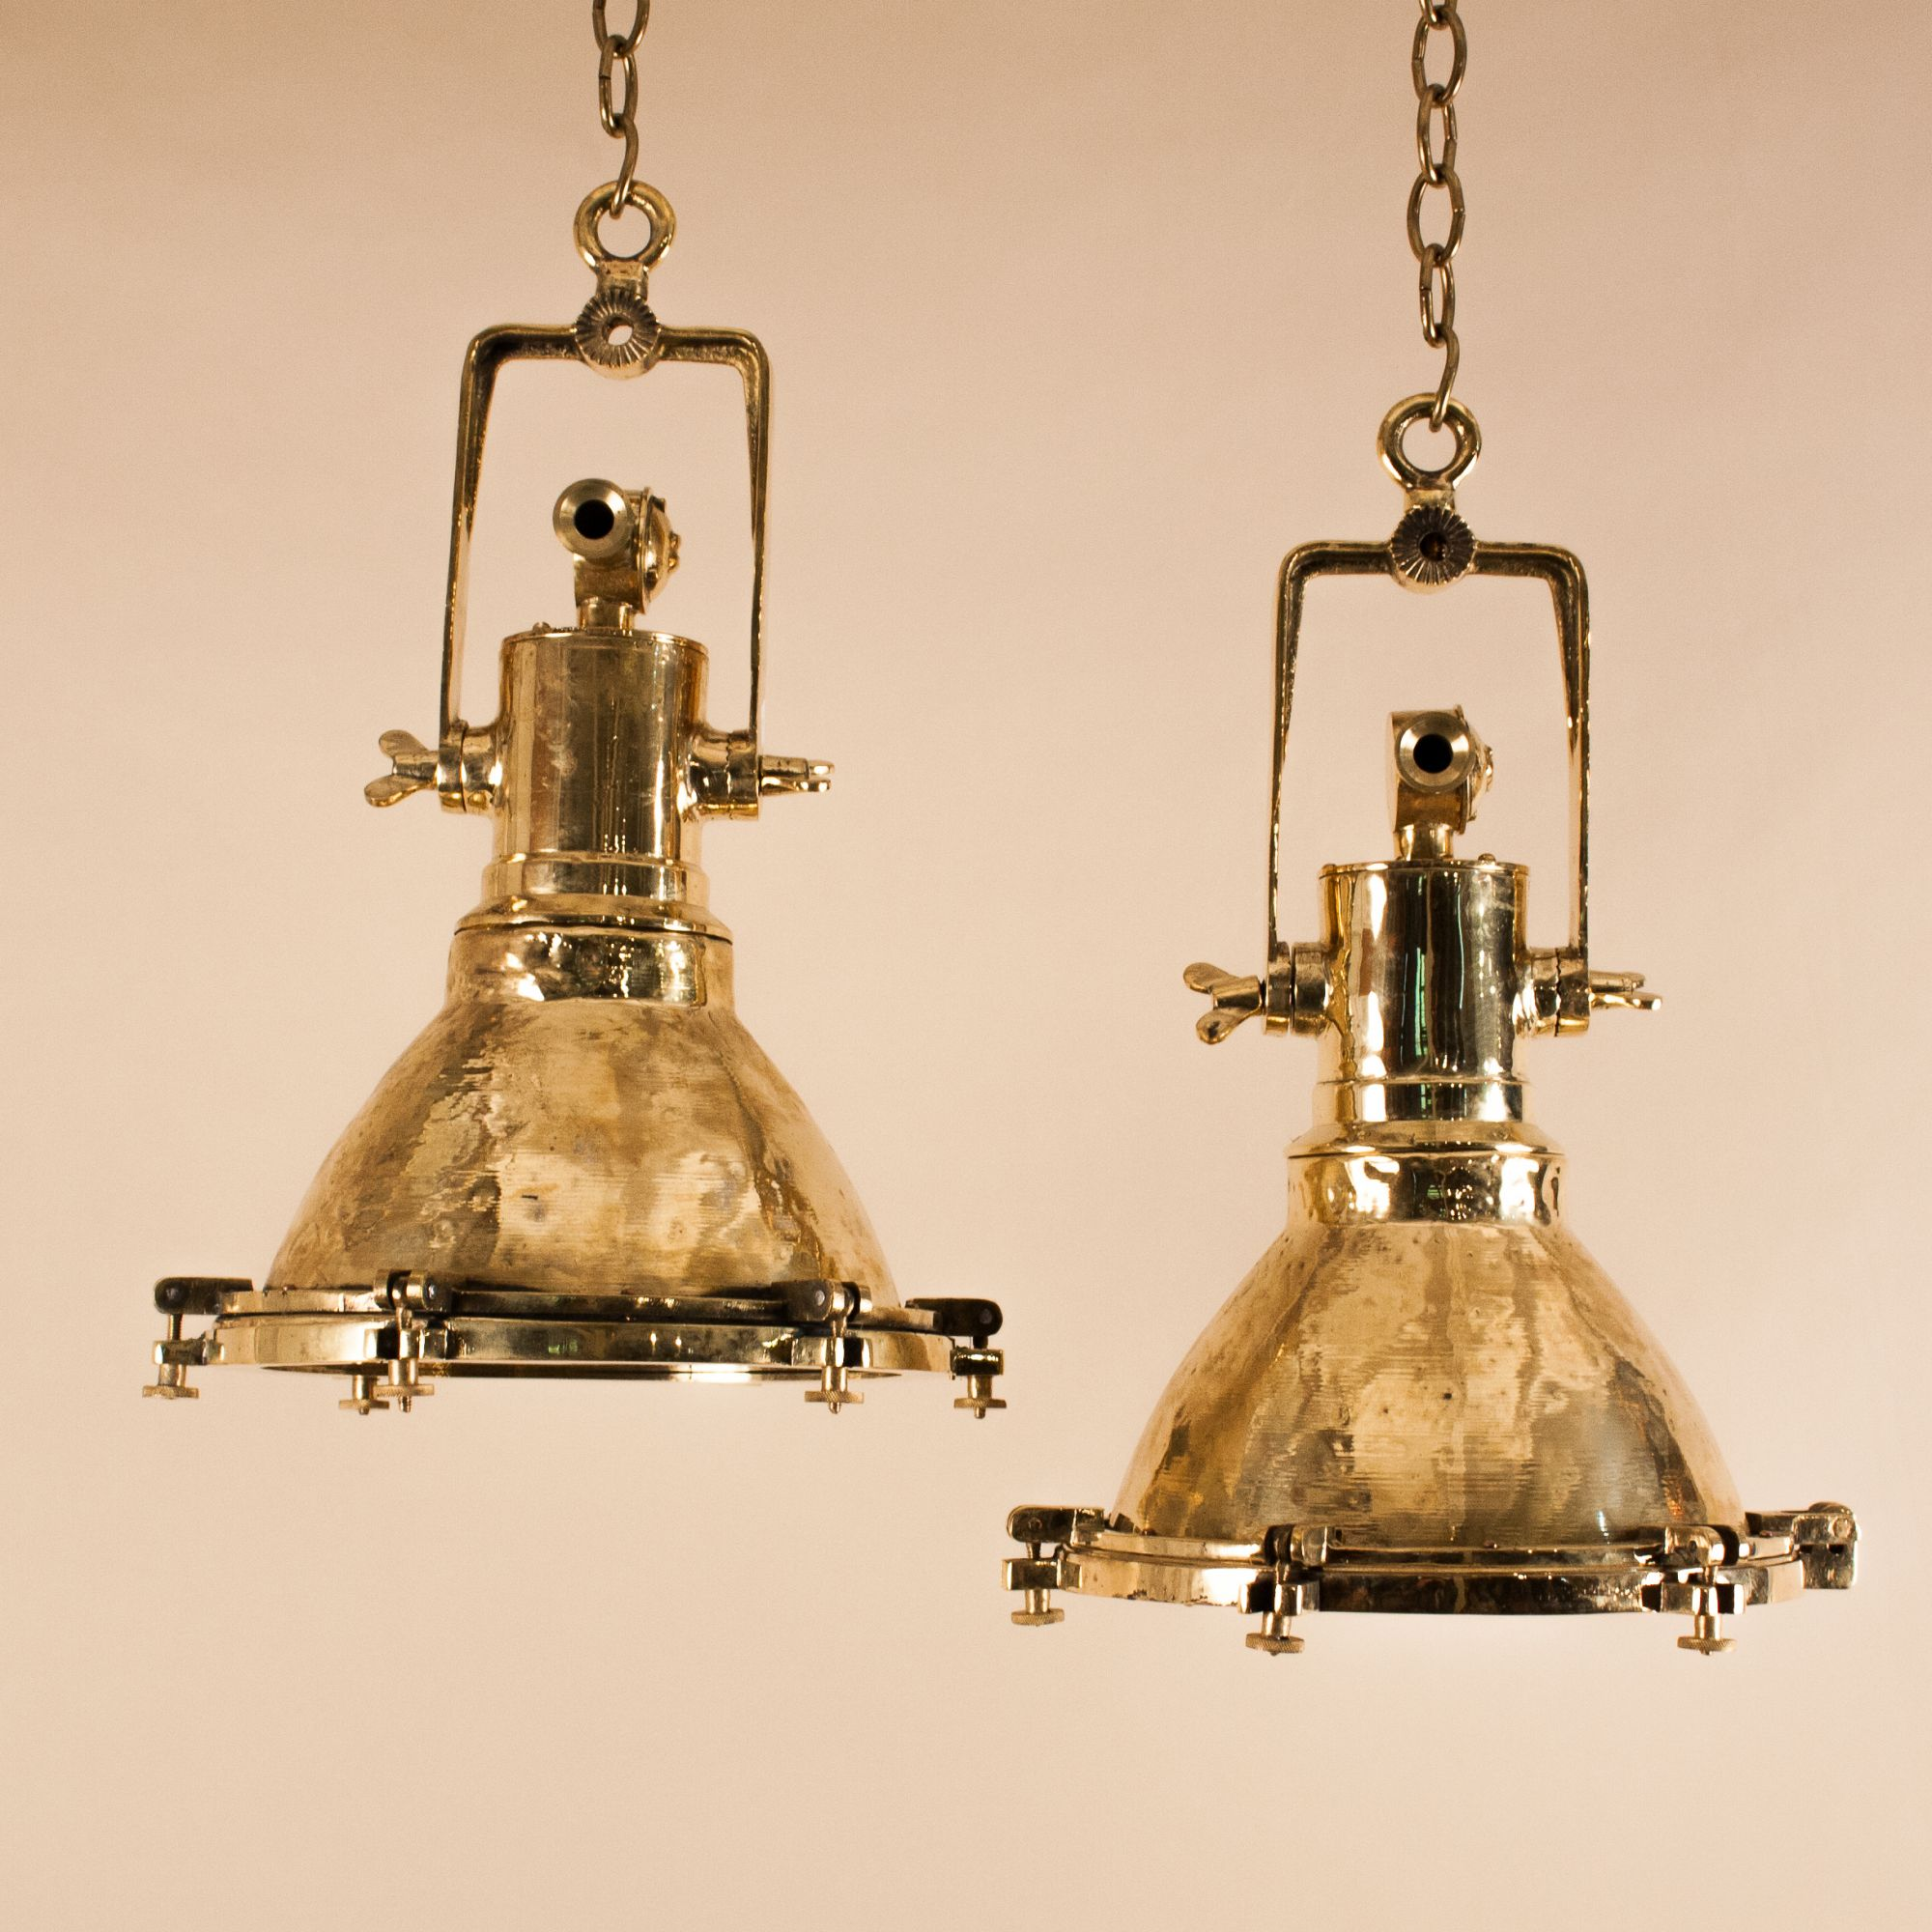 Pair of Mid 20th Century Brass Maritime or Industrial Pendant